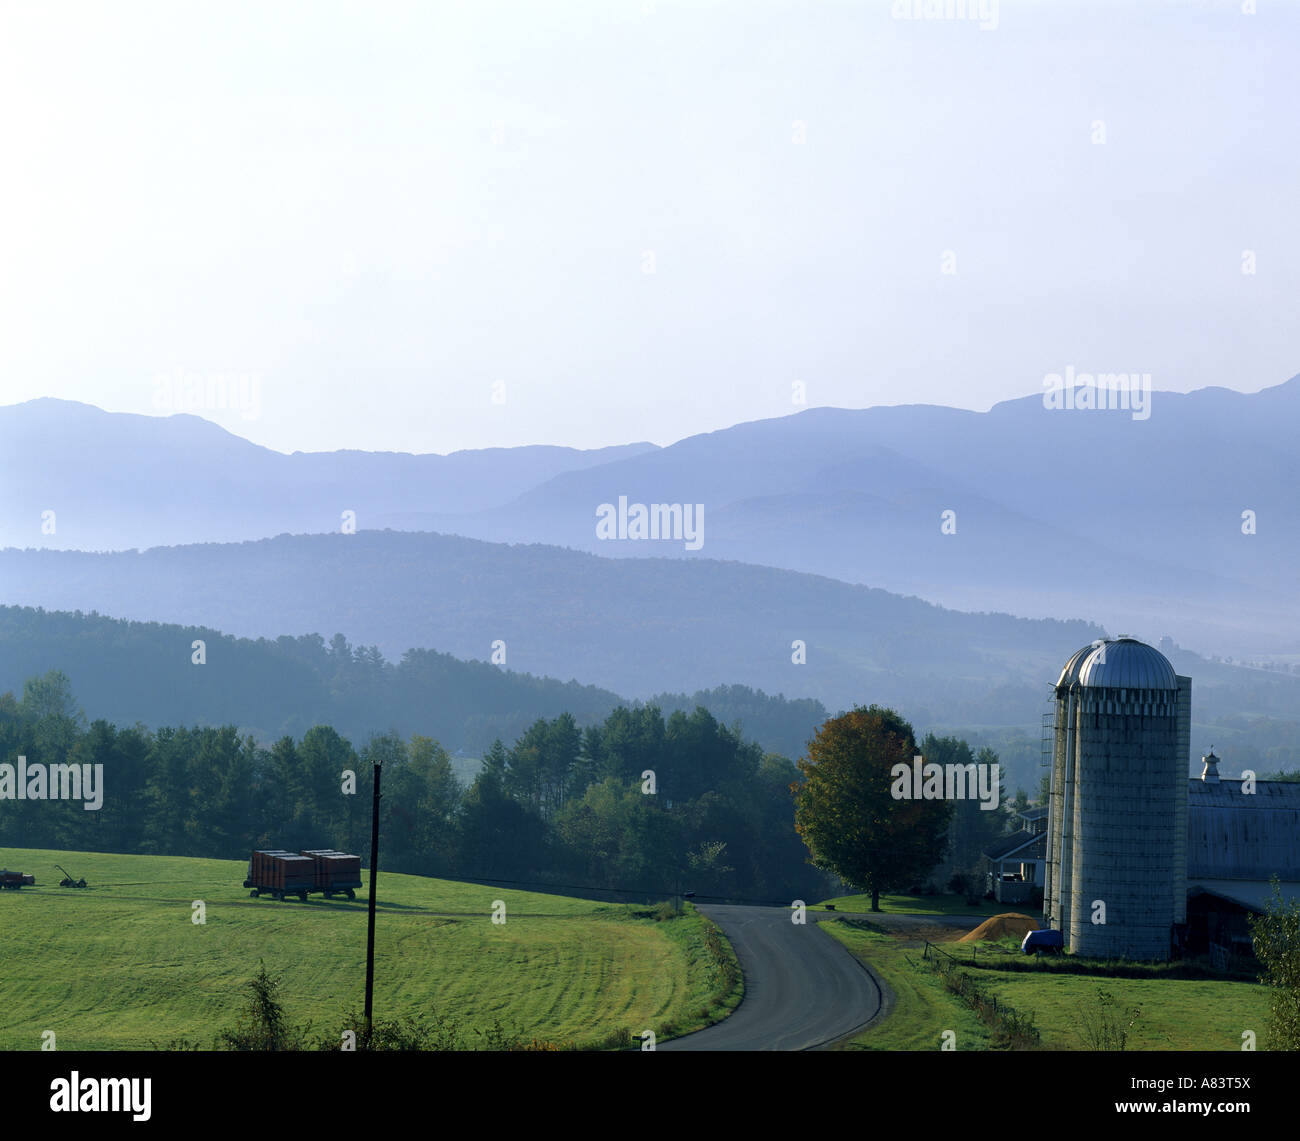 DAIRY FARM IN MORNING WITH MOUNTAINS BACKGROUND FRANKLIN COUNTY NEAR FAIRFIELD VERMONT